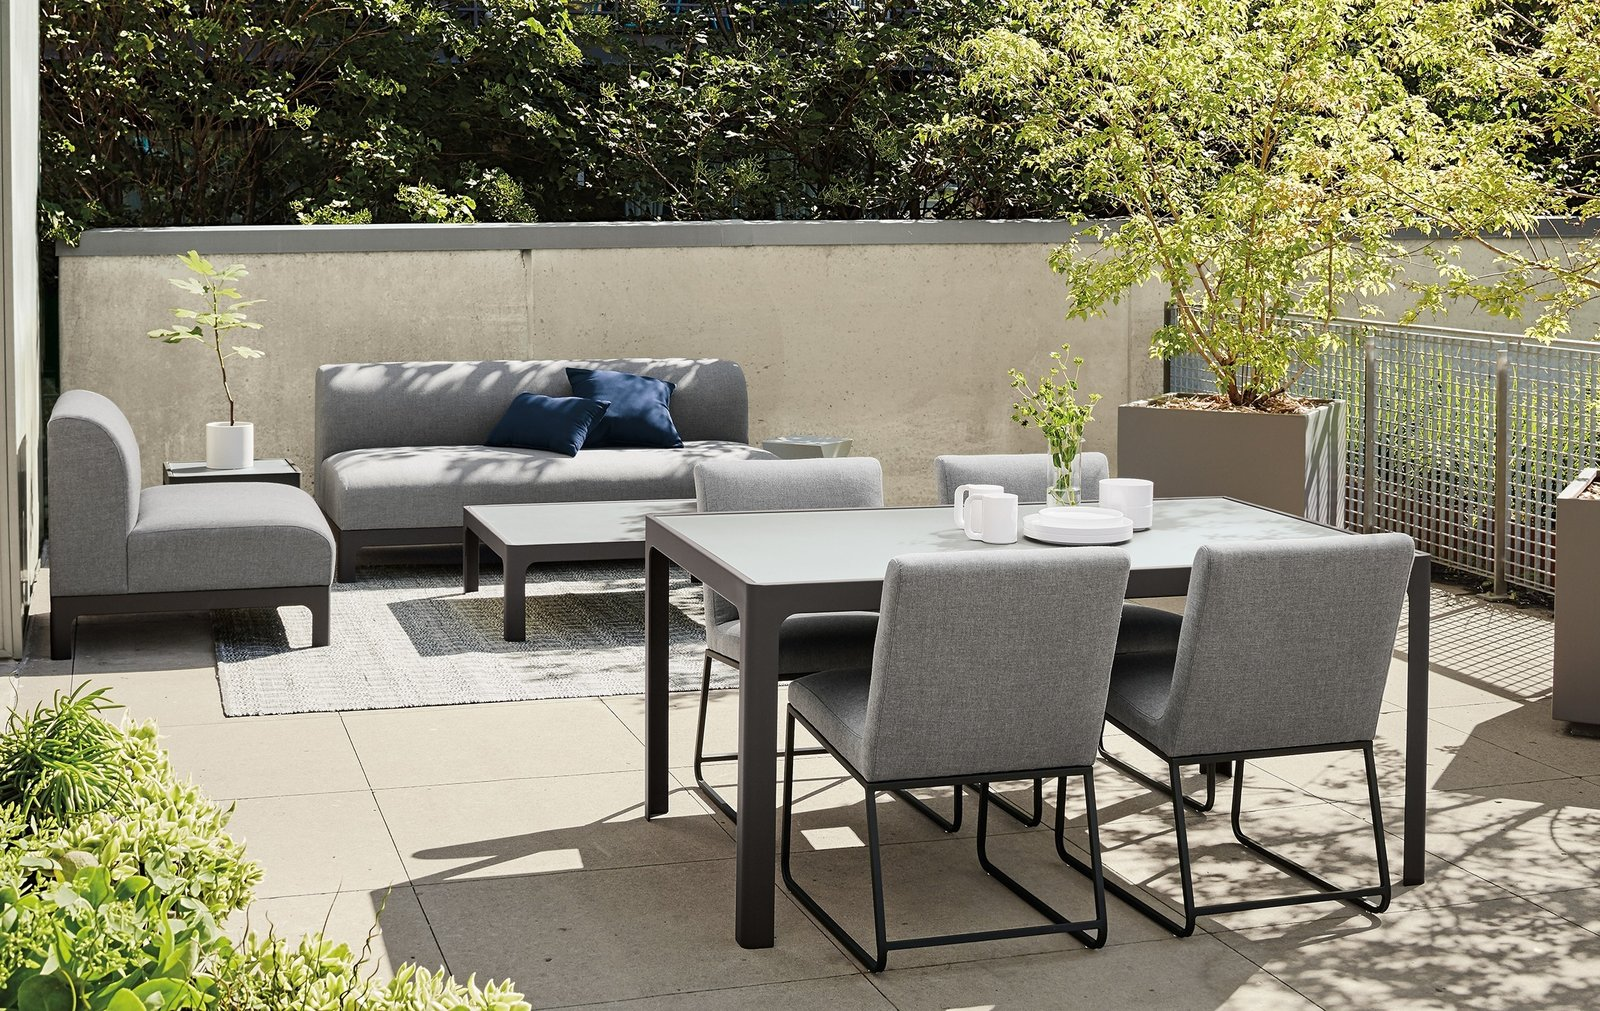 Articles about 6 casual outdoor dining spaces on Dwell.com